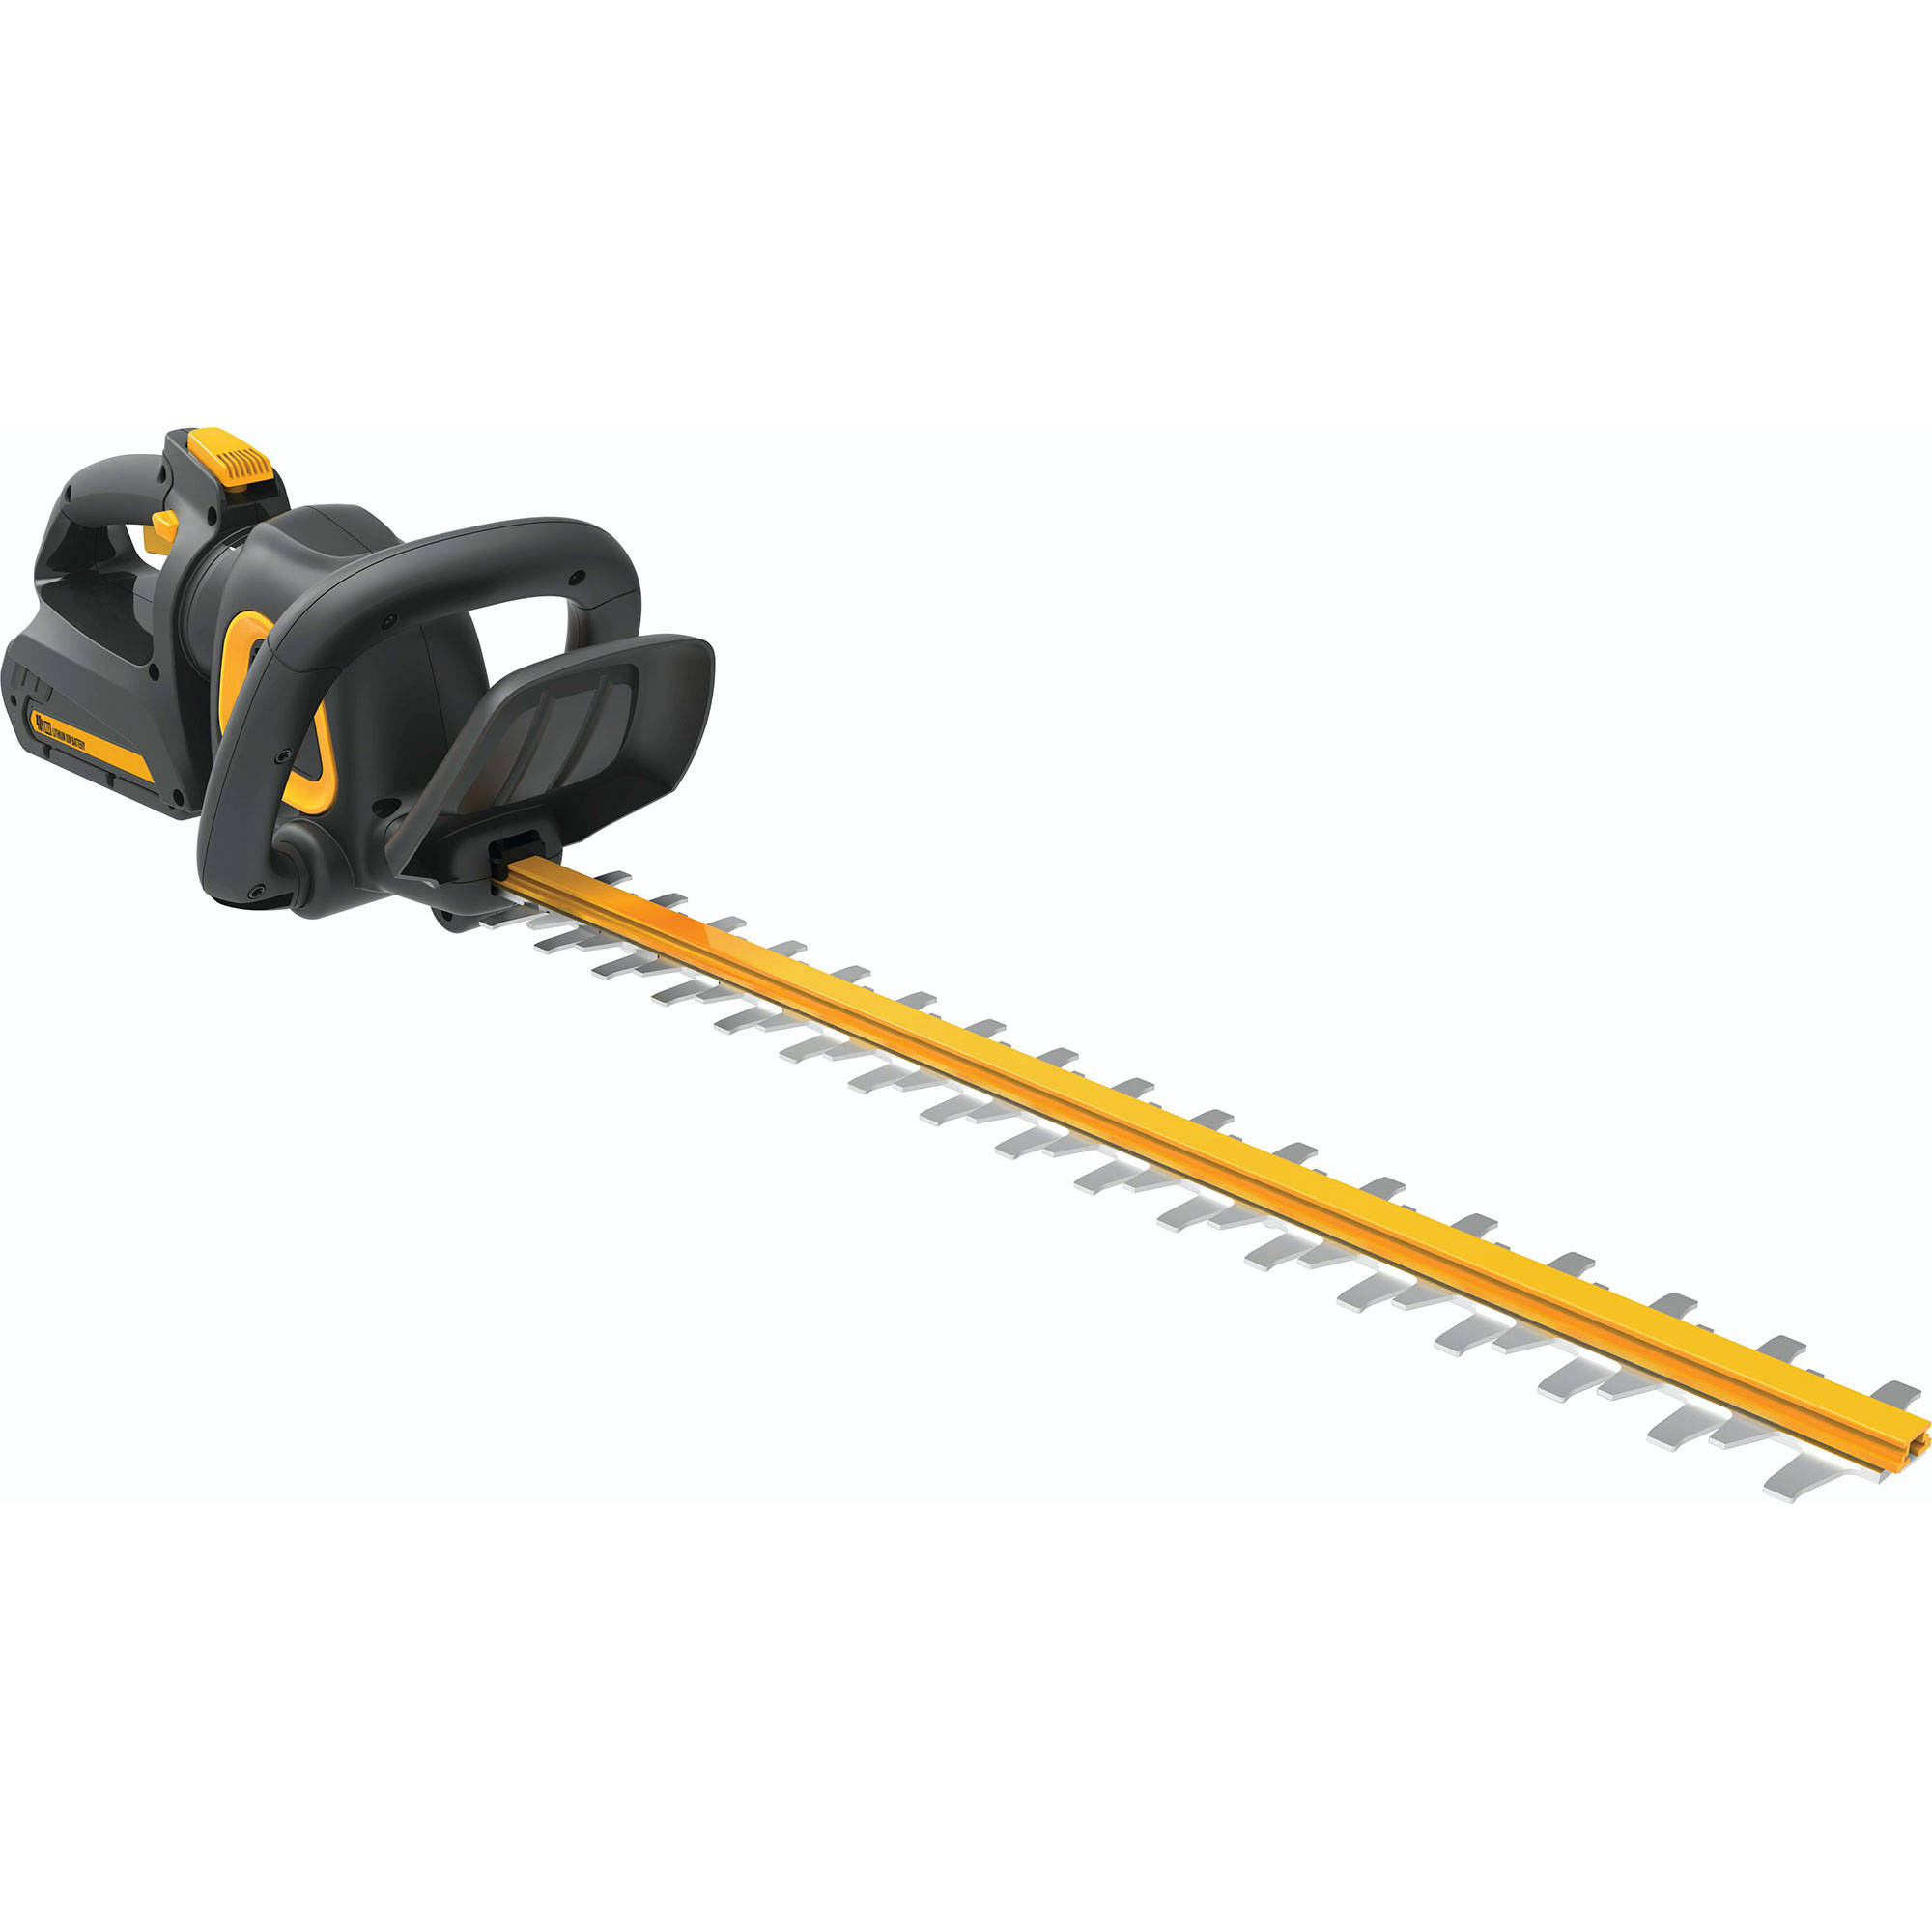 "Poulan Pro 40-Volt Lithium-ion Rechargeable Battery 24"" Hedge Trimmer"